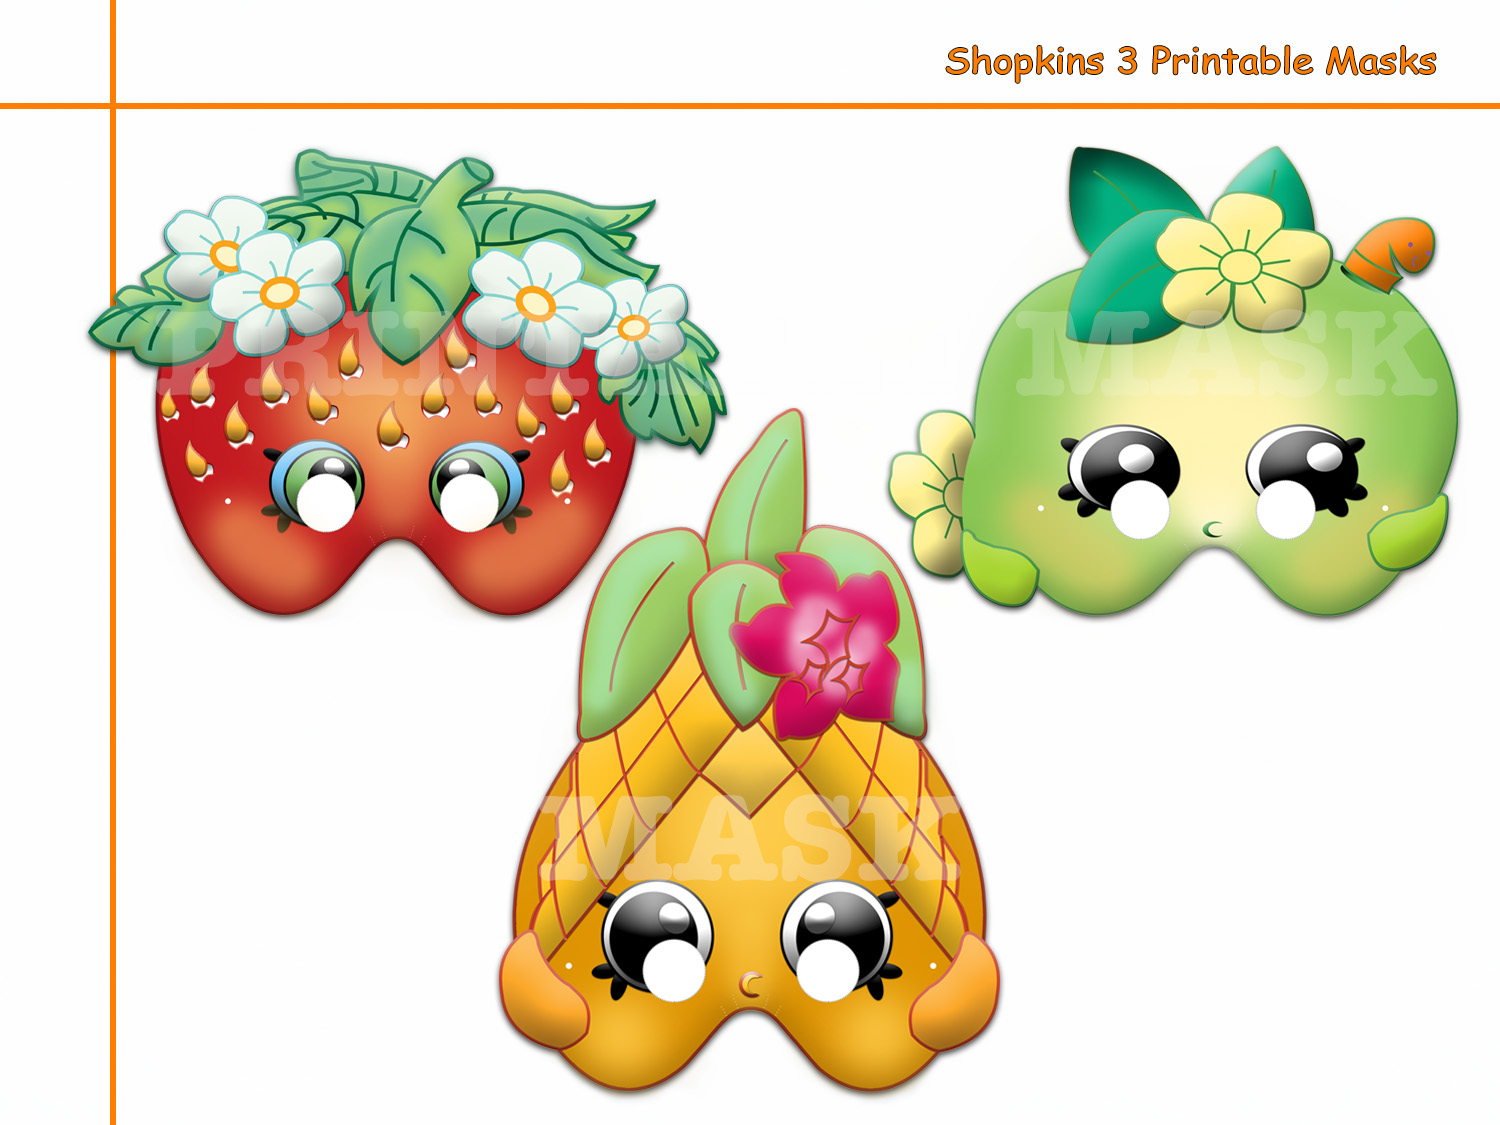 Unique Shopkins 3 Printable Masks Party By Holidaypartystar On